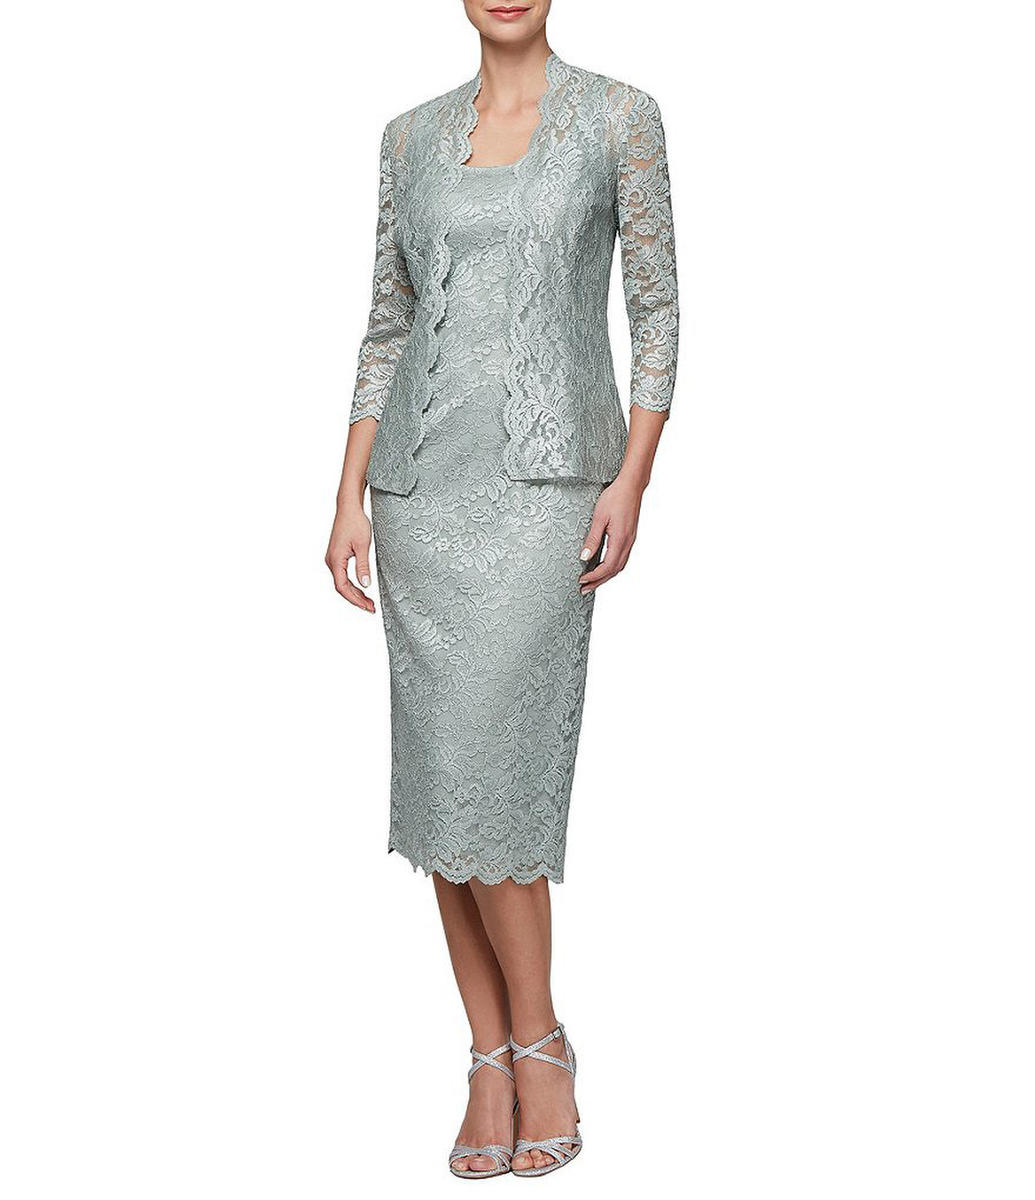 ALEX APPAREL GROUP INC - Metallic Lace Dress with Jacket